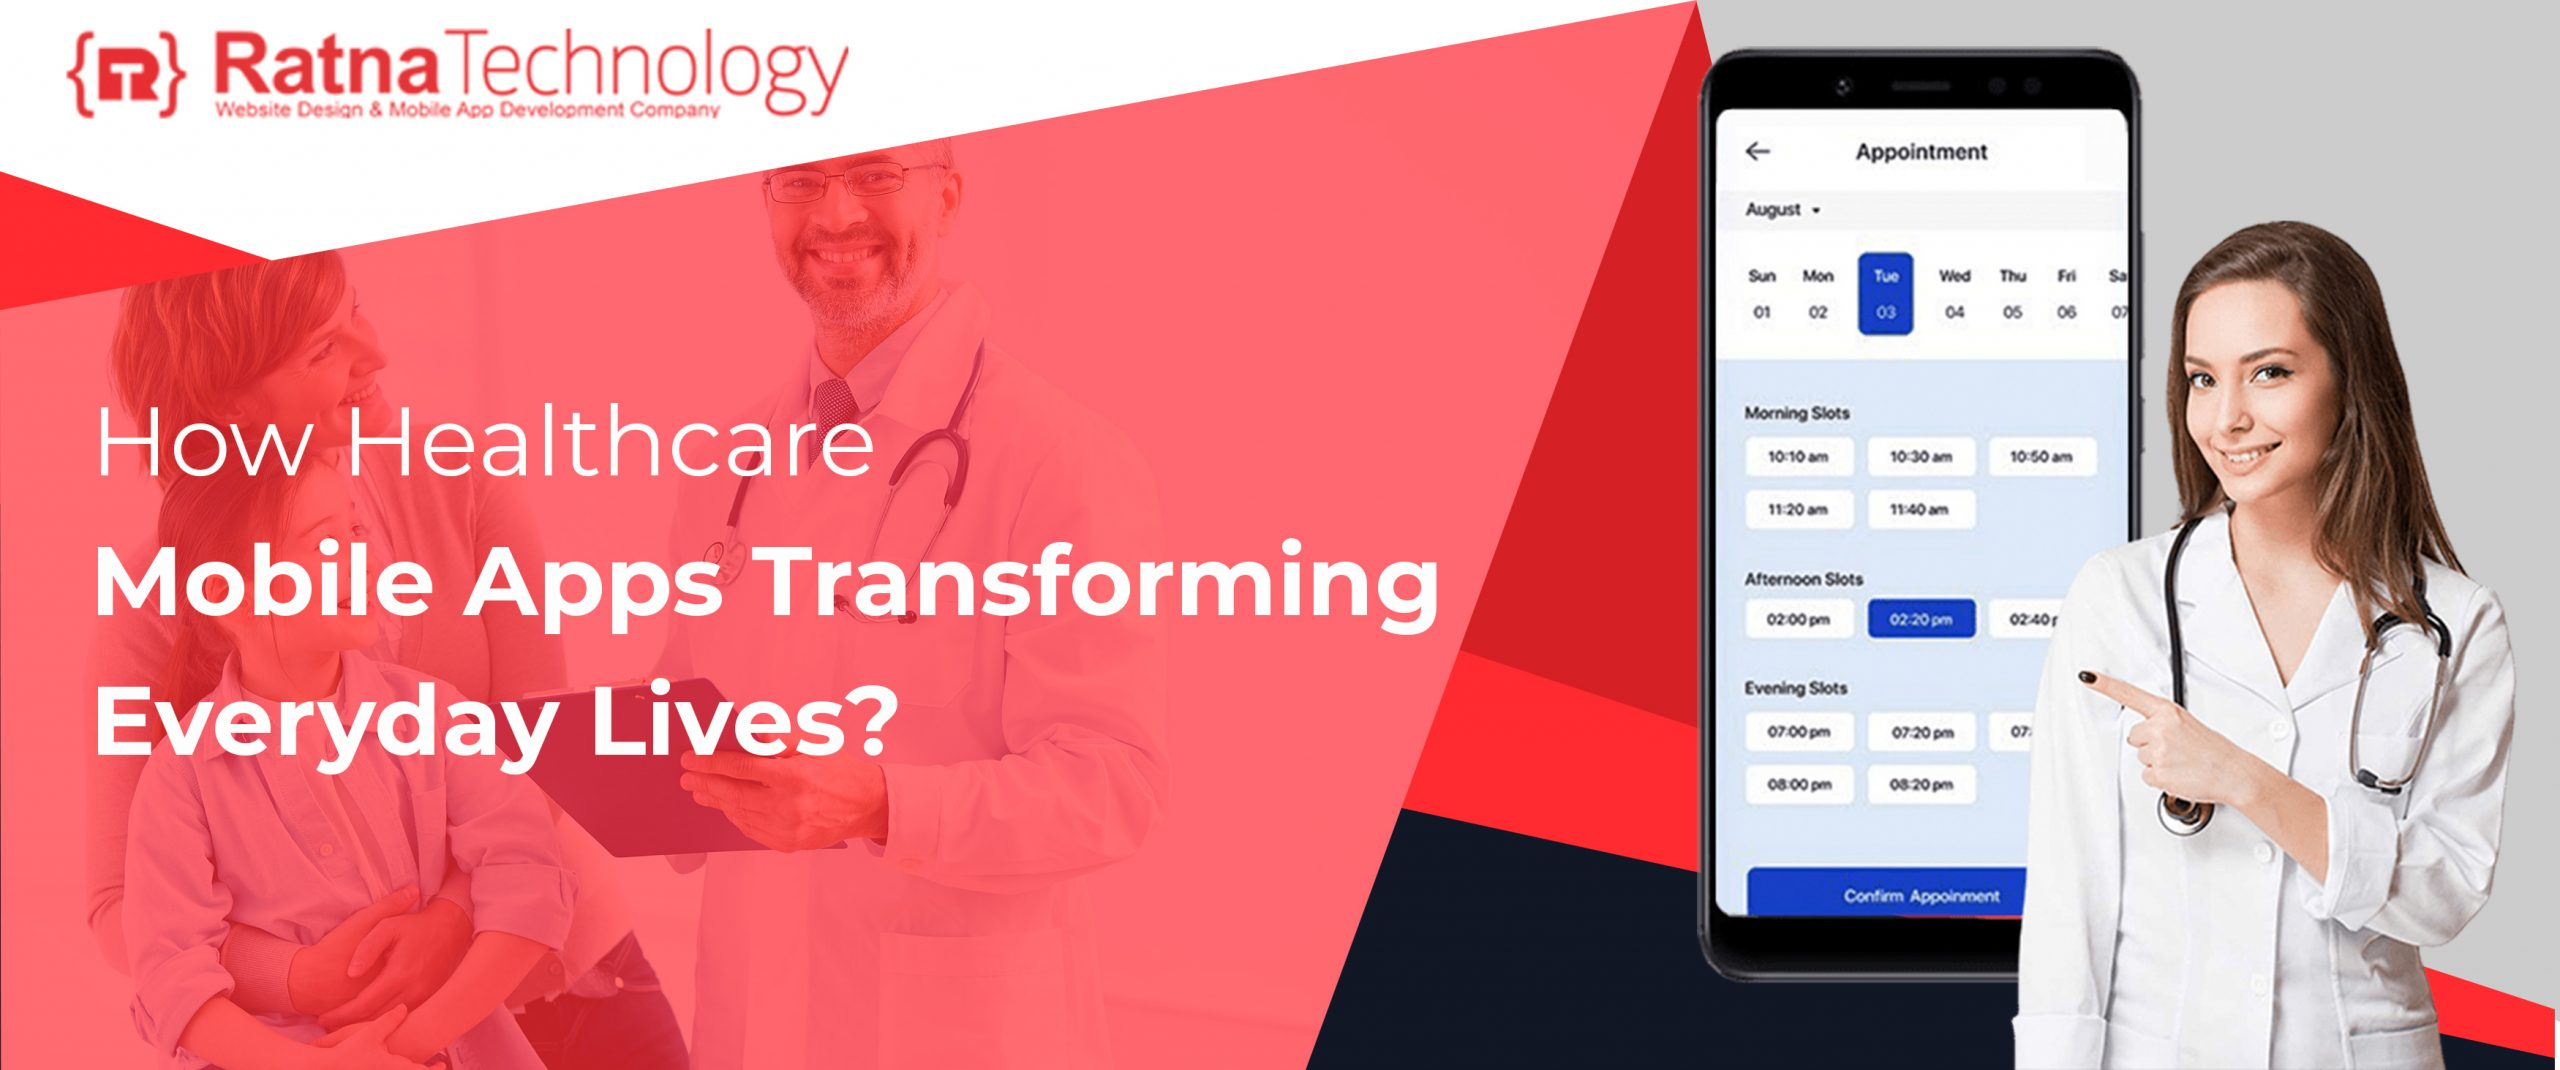 How Healthcare Mobile Apps Transforming Everyday Lives